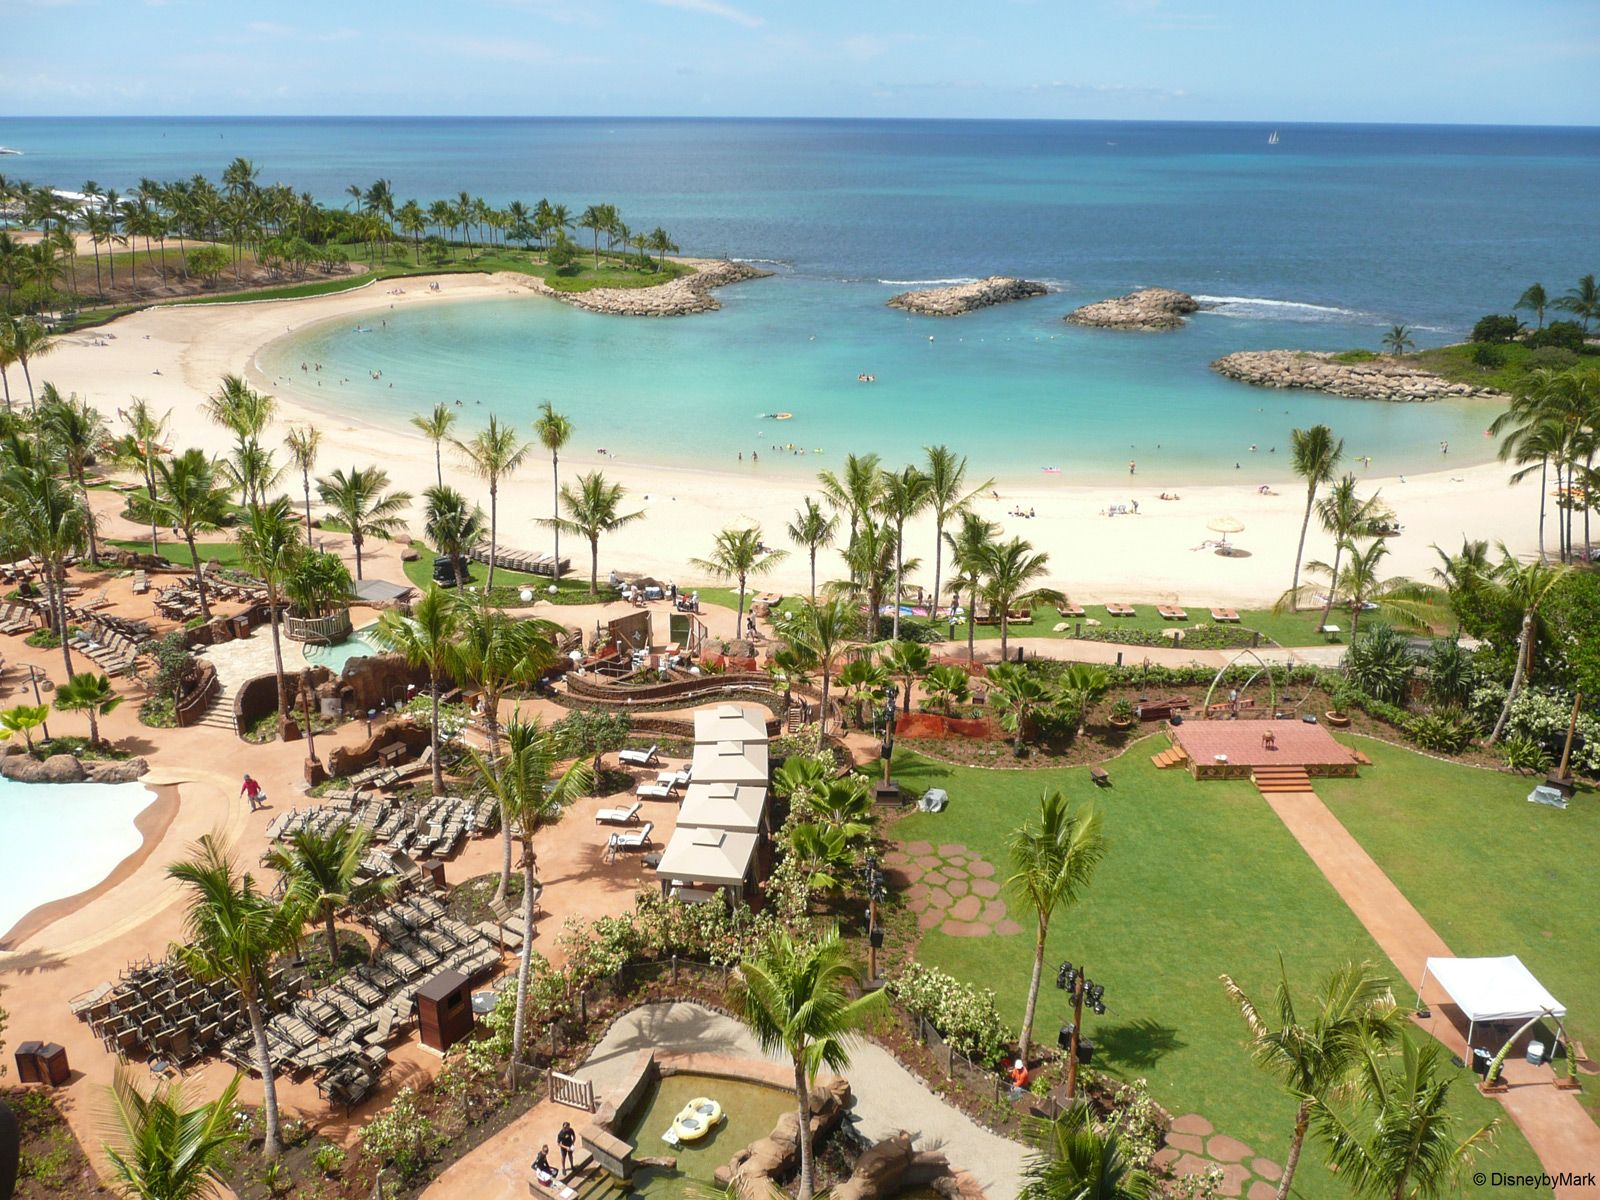 Disney Has Taken Its First Leap Into The Hotel Industry Proper With Opening Of A Standalone Resort And Spa Named Aulani In Hawaii